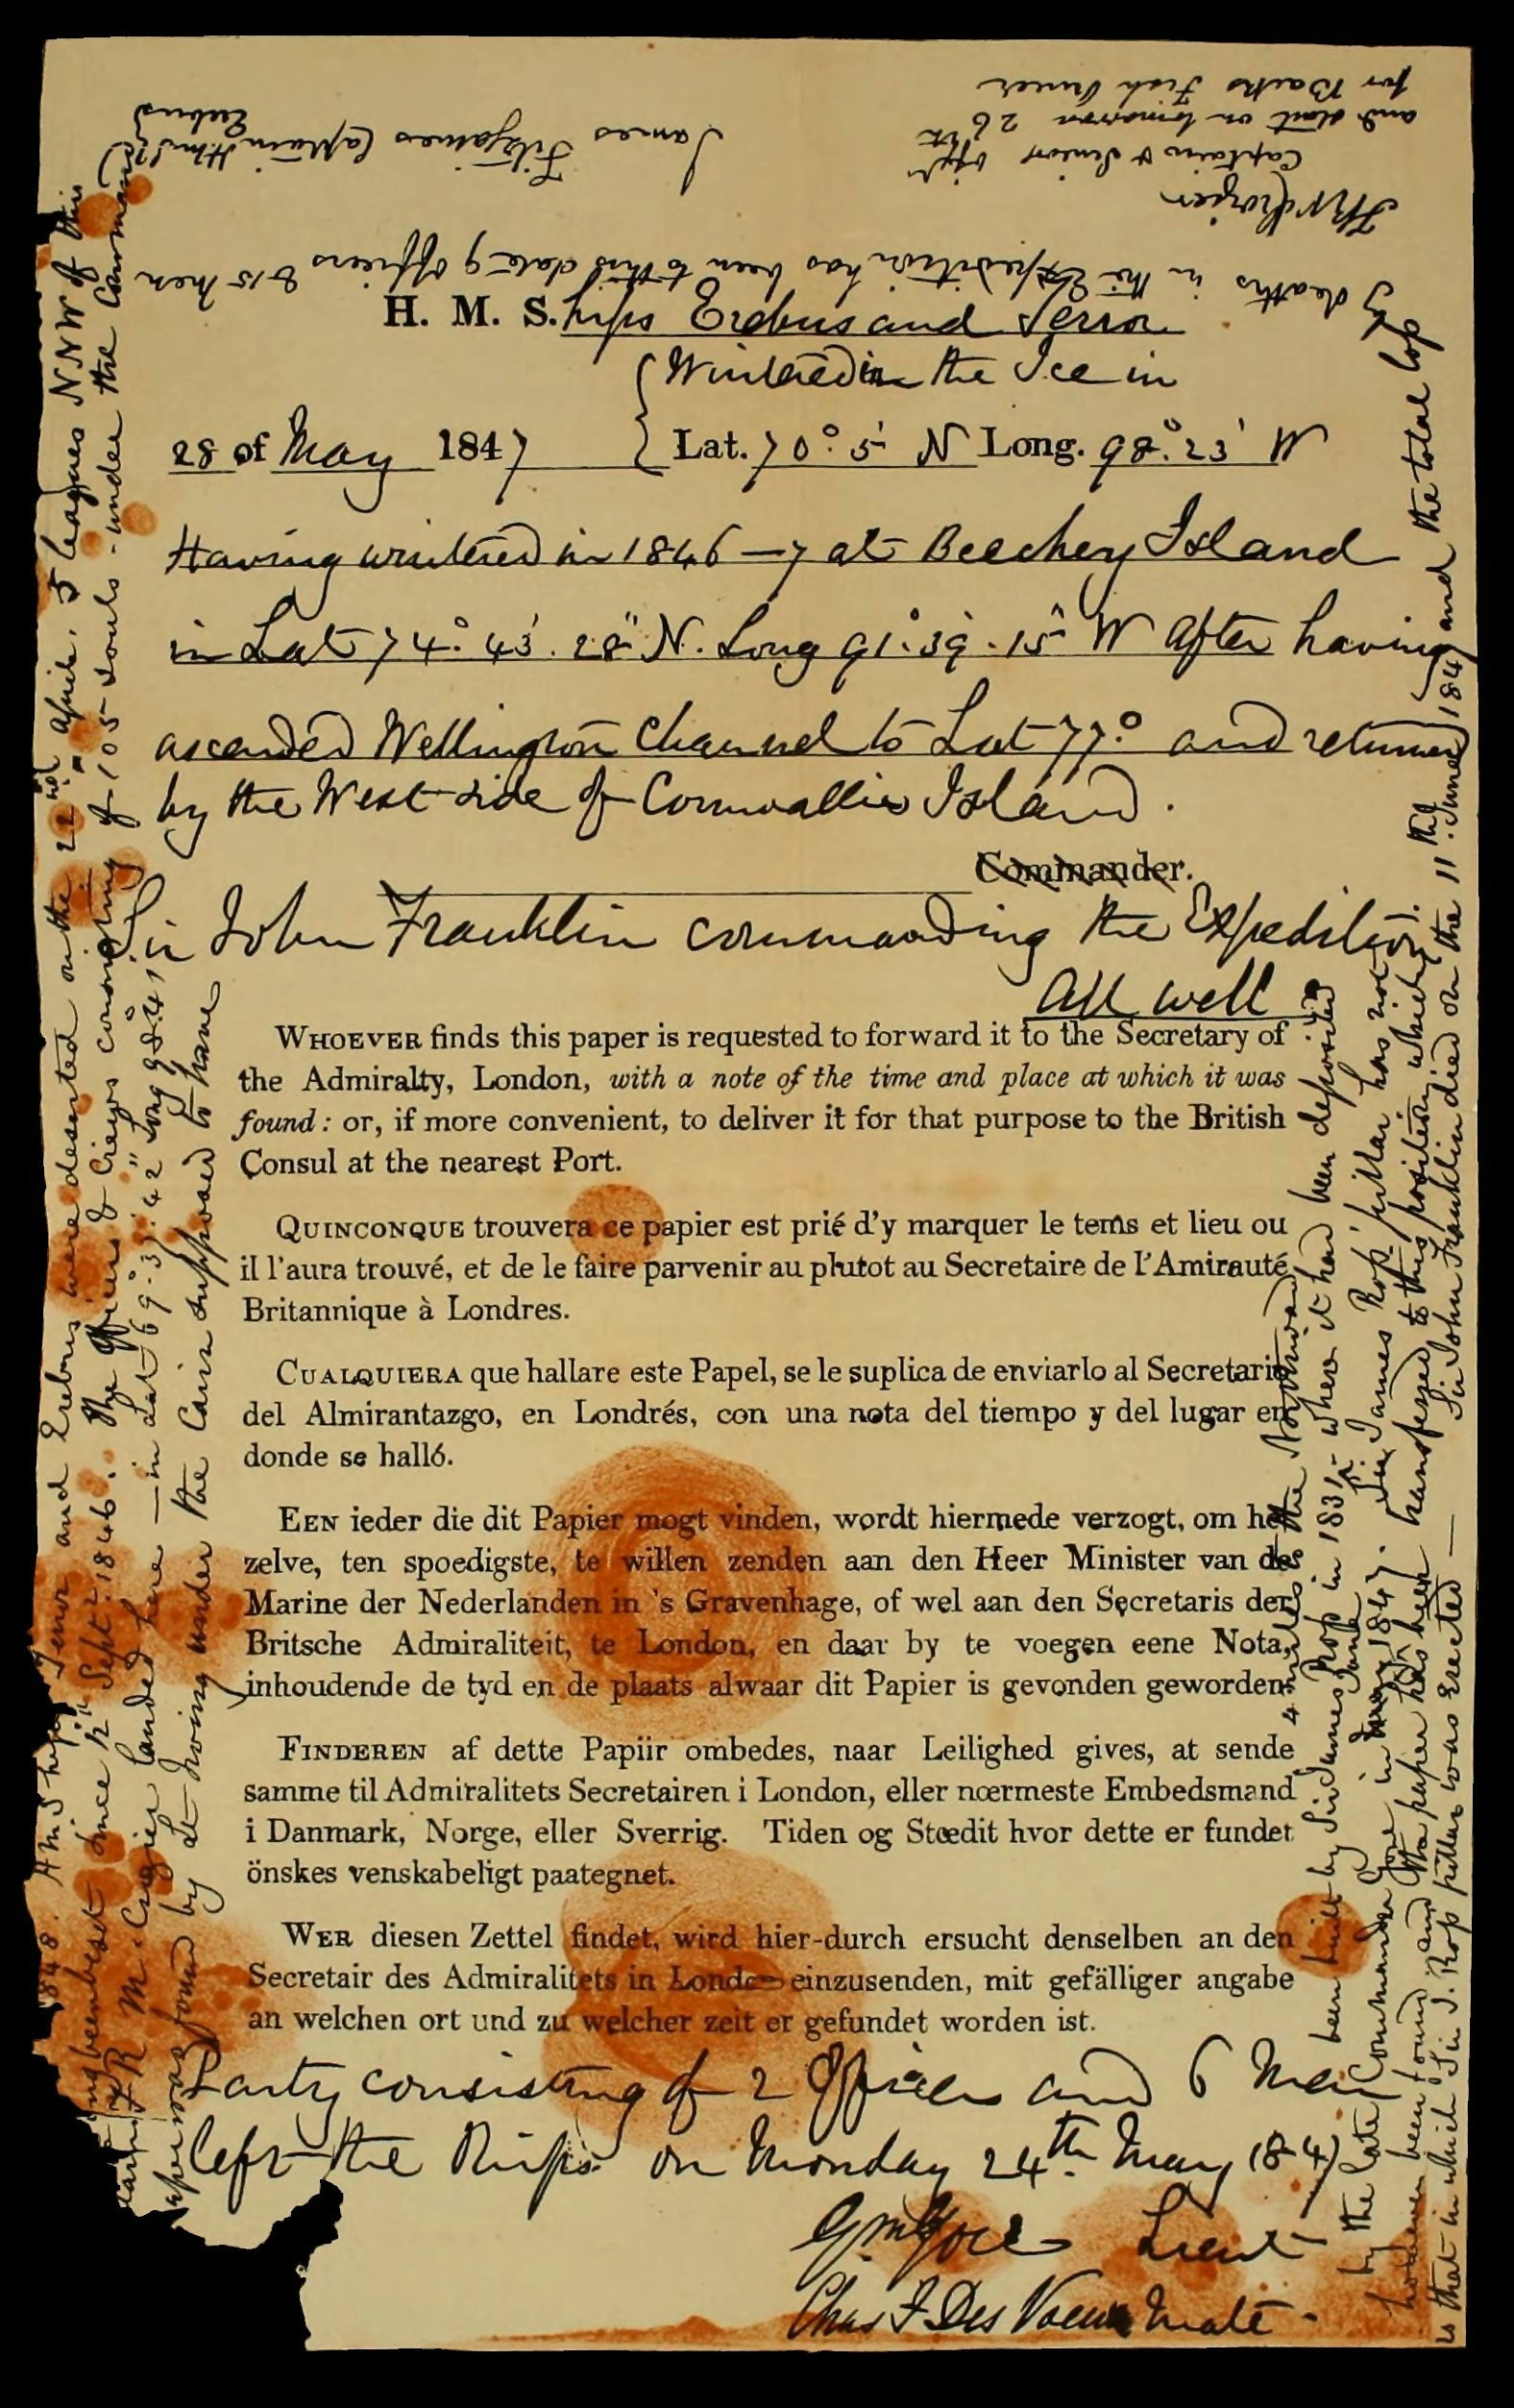 The last report of the Franklin Expedition, found in a lifeboat along with the bodies of some of Franklin's men.